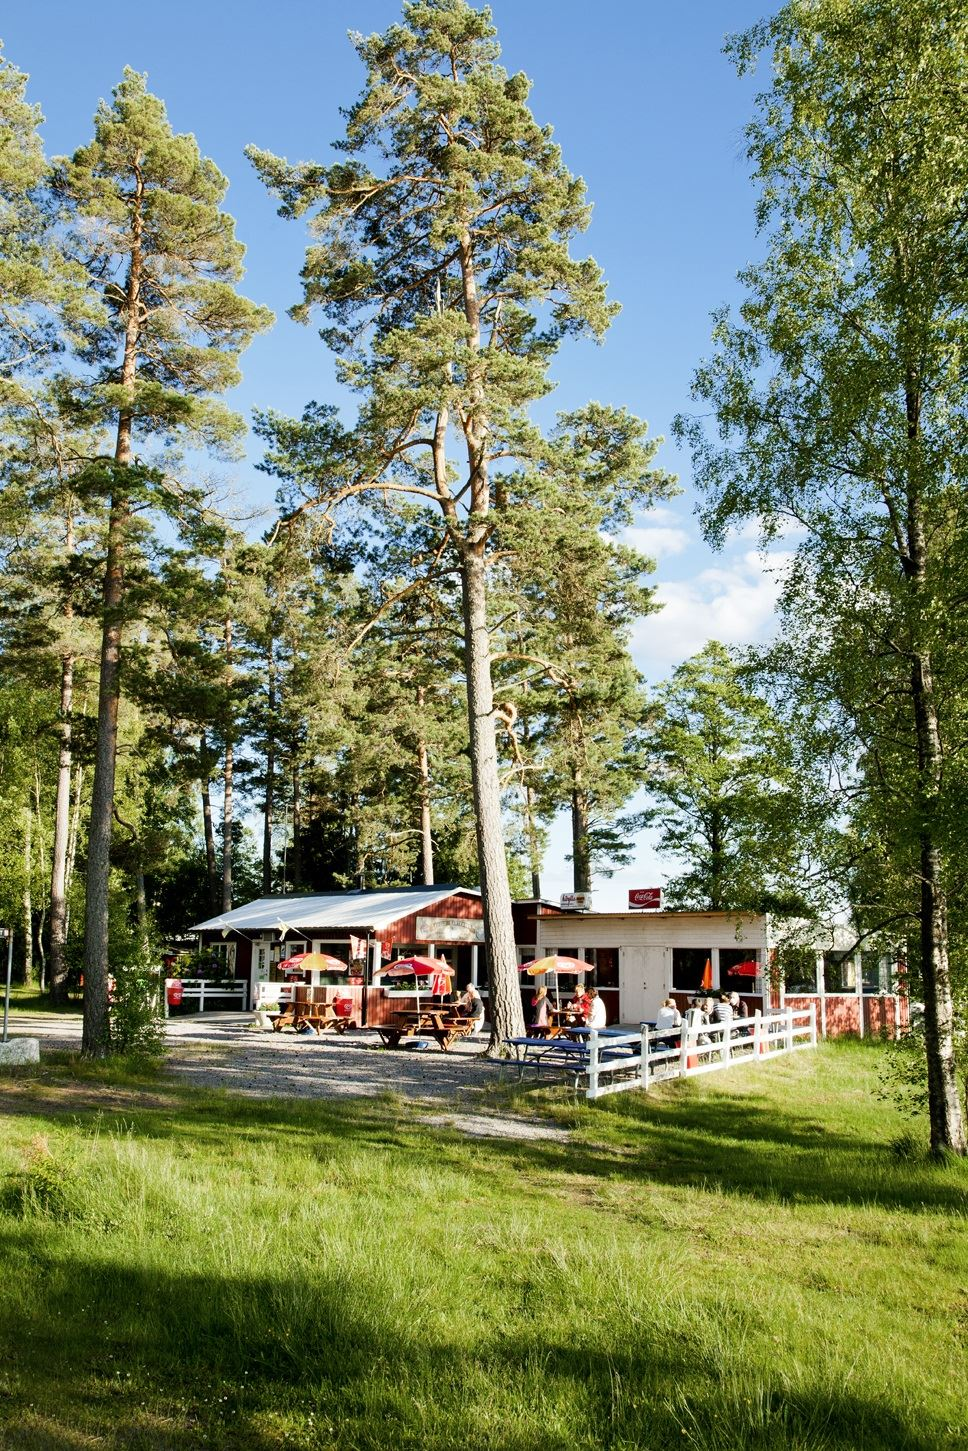 Flatenbadets Stugor & Camping - Cabbins & Campsite